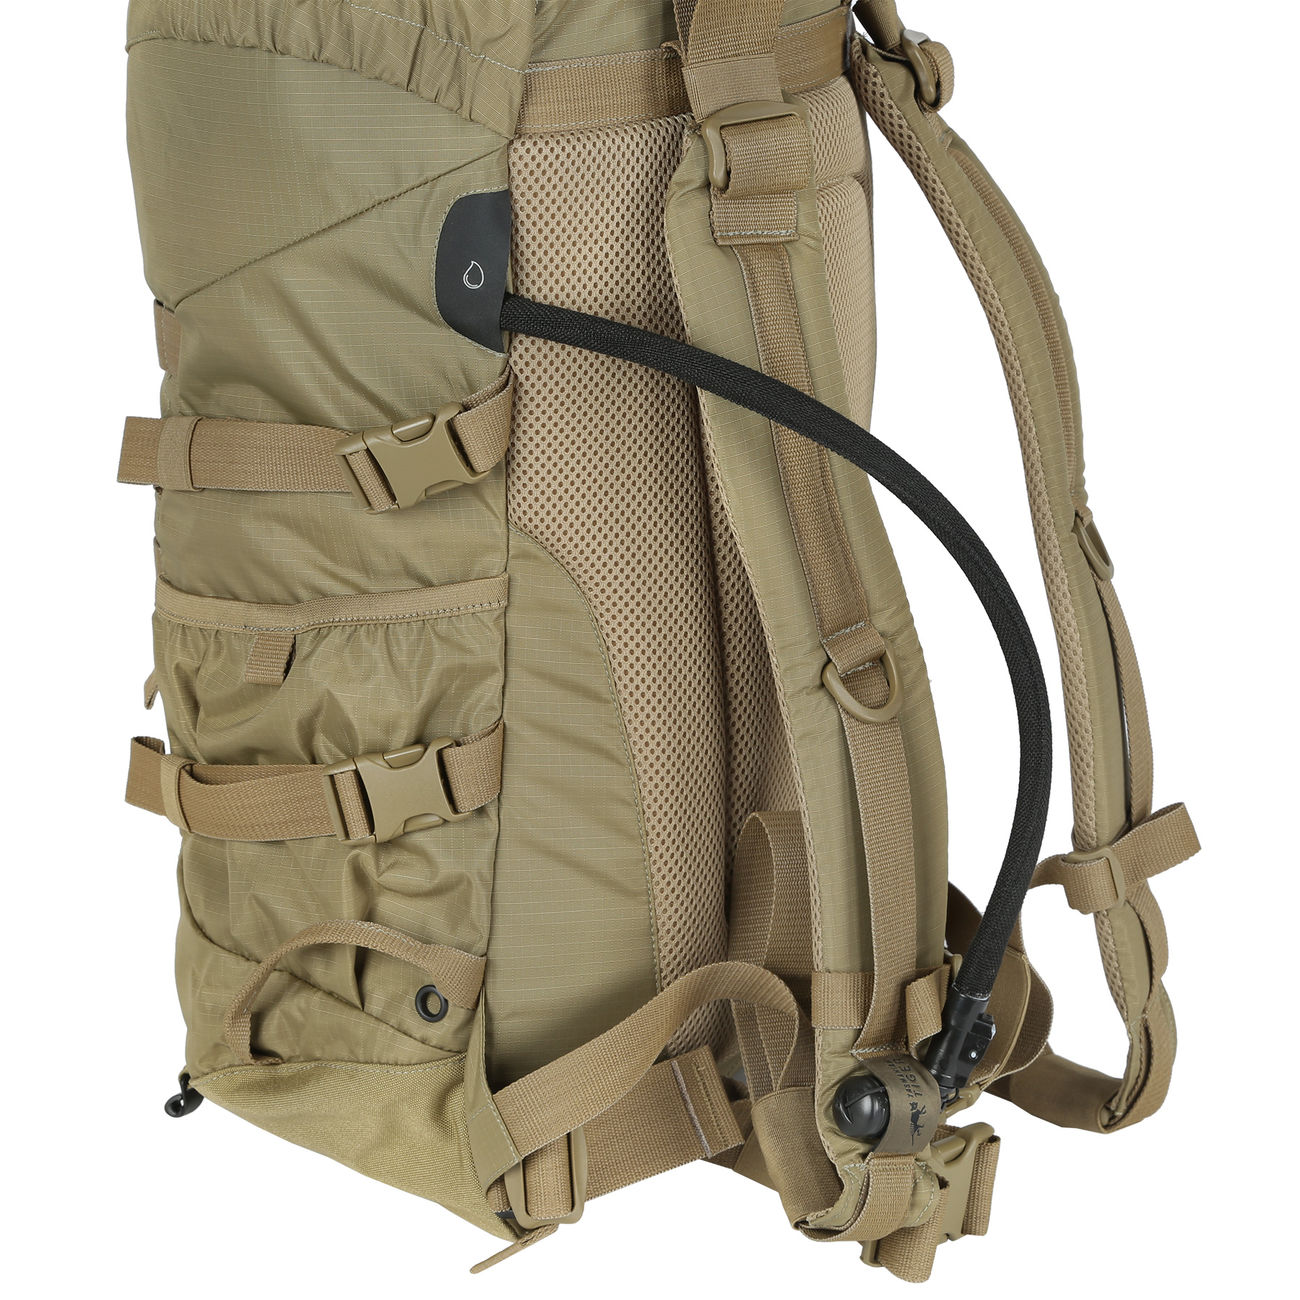 TT Rucksack Trooper Light Pack 35 khaki 9